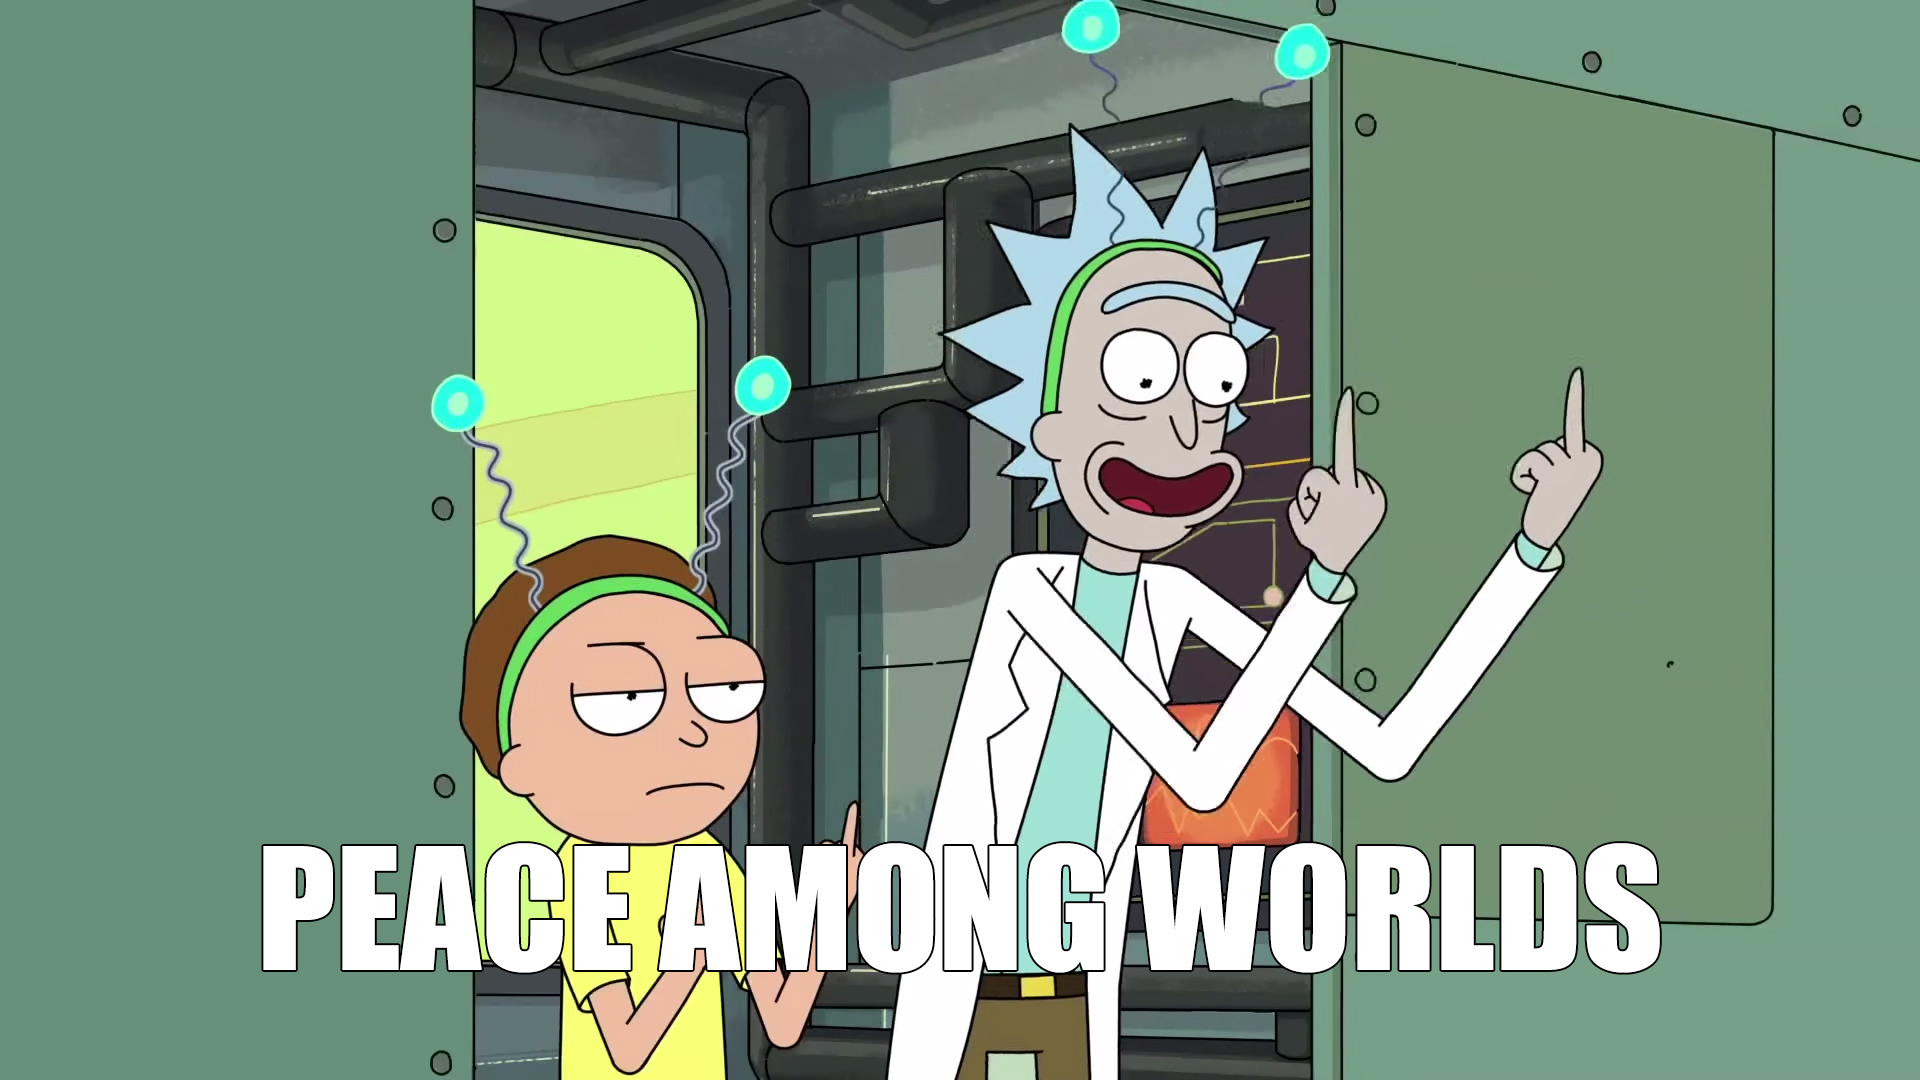 Rick And Morty Quote Wallpaper Tv Quotes Peace Among Worlds Tv Quotes